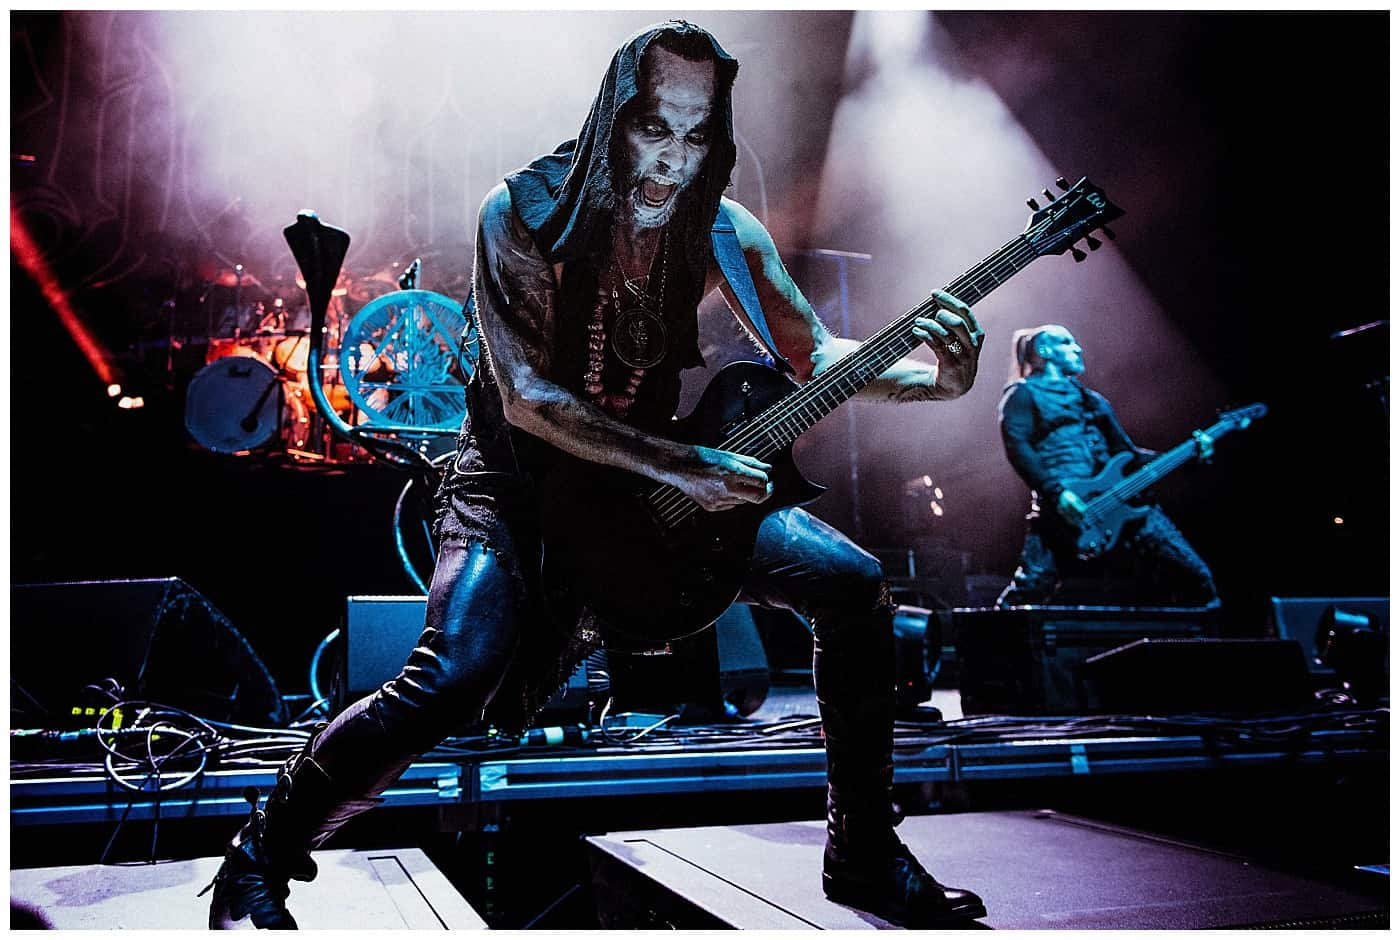 behemoth photos montreal